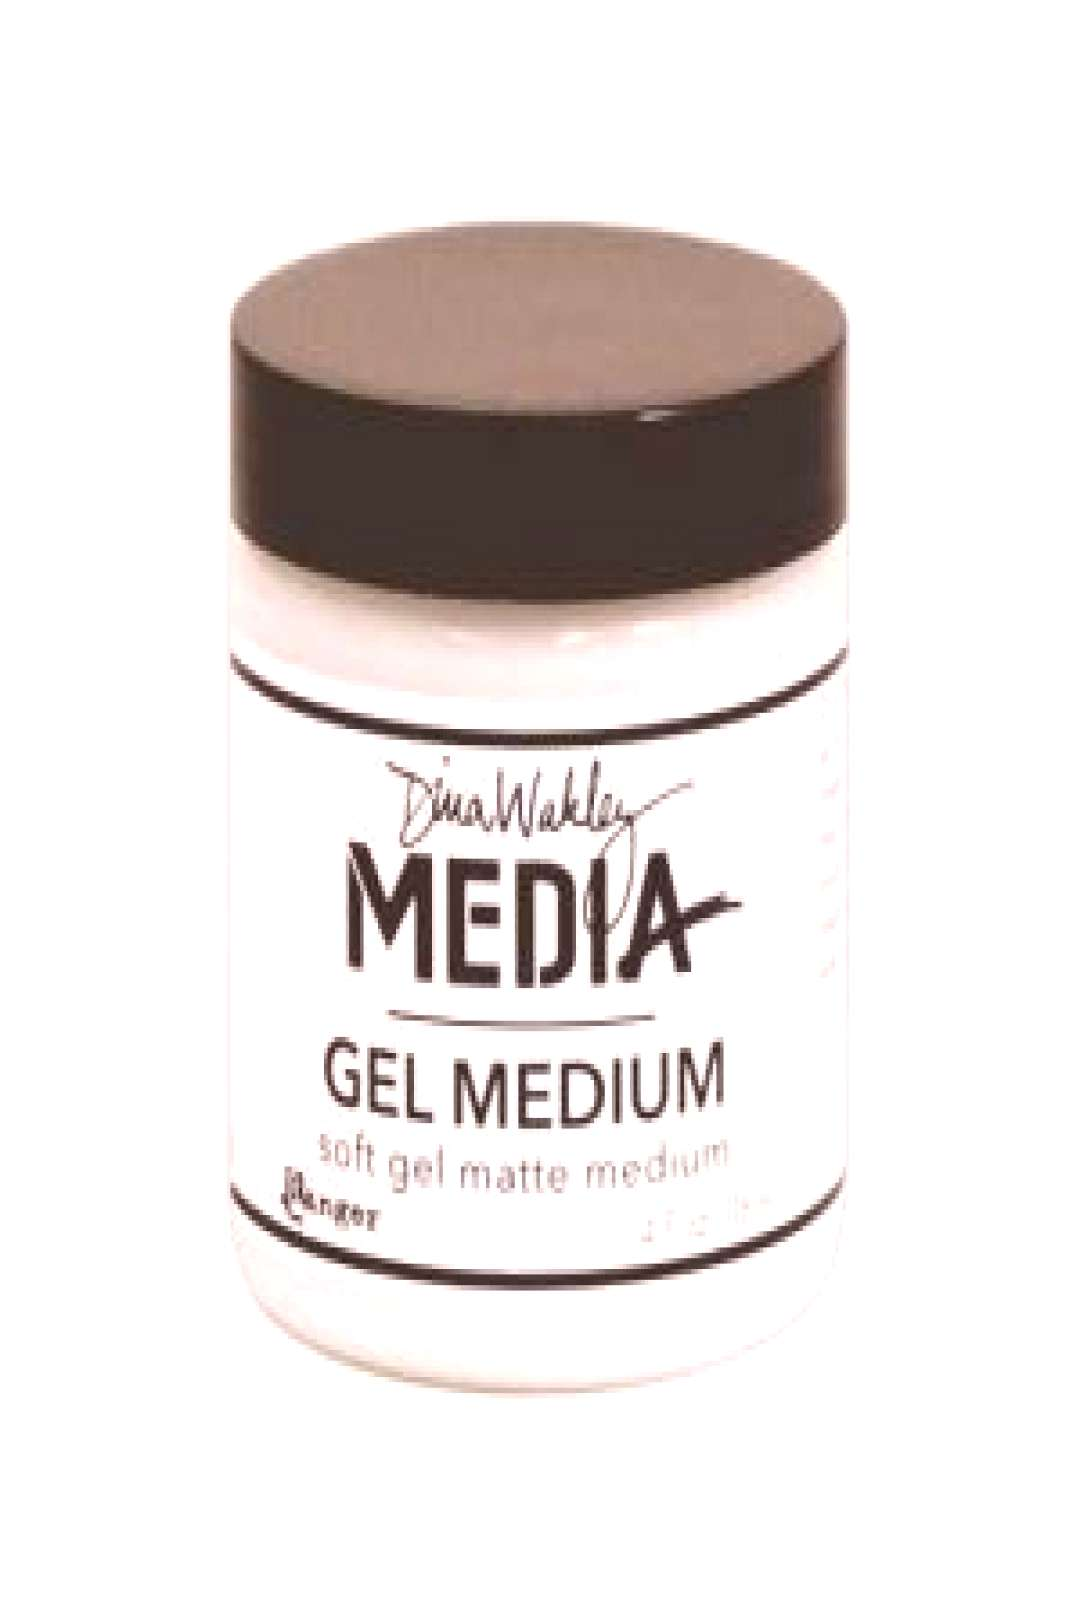 Dina Wakley Media Gel Medium - 4oz Jar